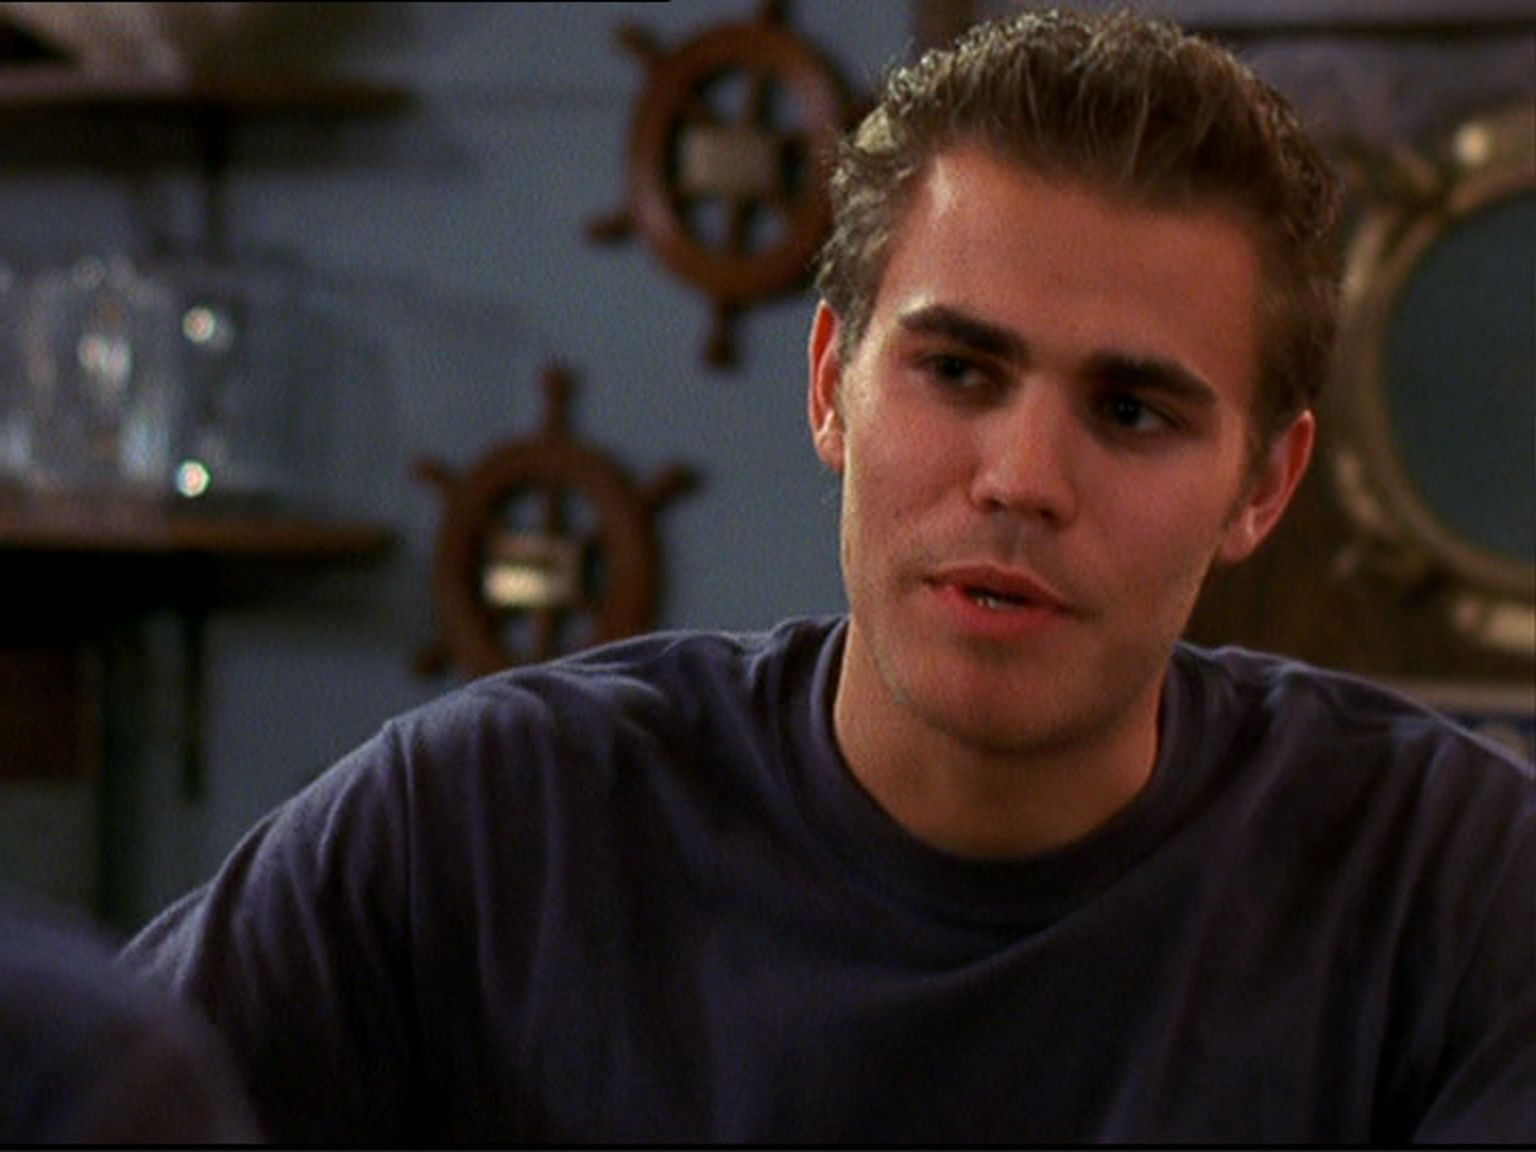 Paul Wesley Images Paul As Donnie In The Oc Ep 1x05 The Outsiders Hd Wallpaper And Background